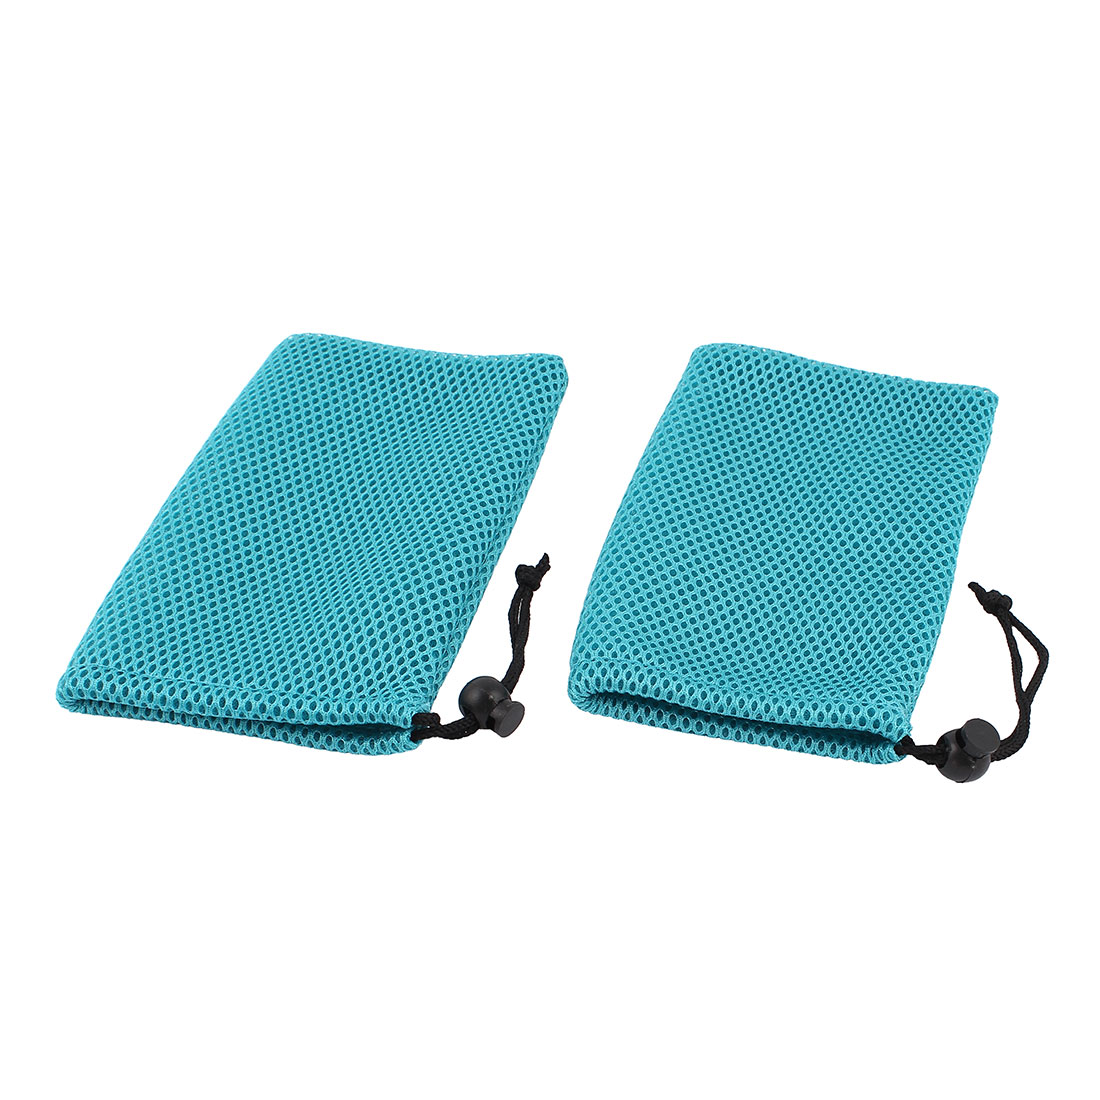 2 Pieces Teal Mesh Mp3 Mp4 Cell Phone Mobilephone Pouch Bag